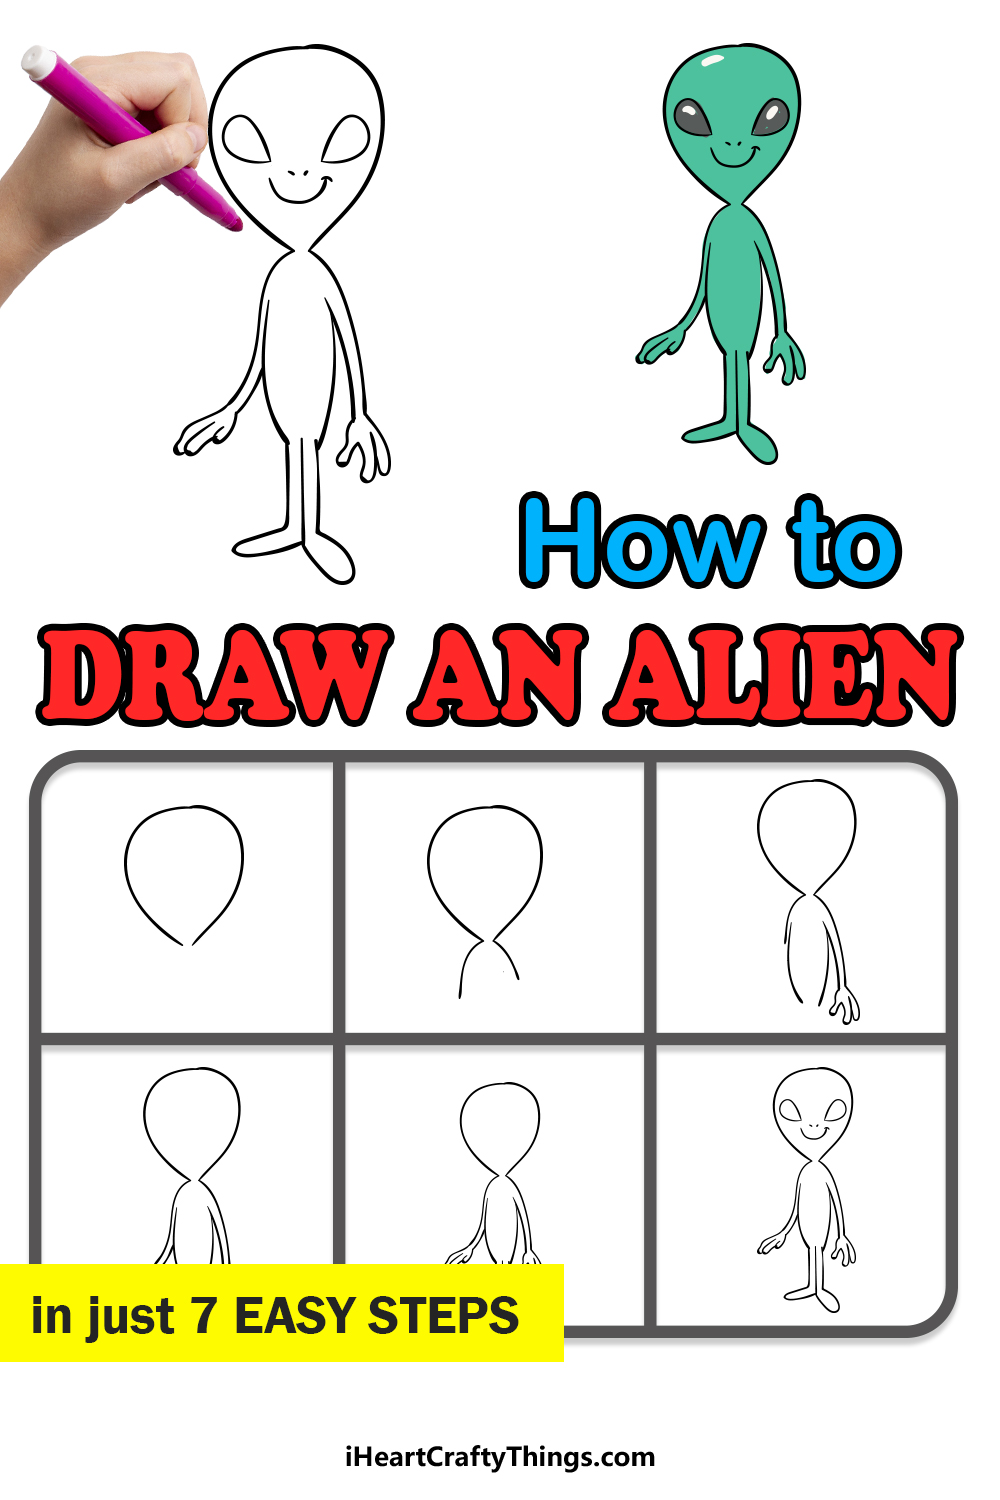 how to draw an alien in 7 easy steps